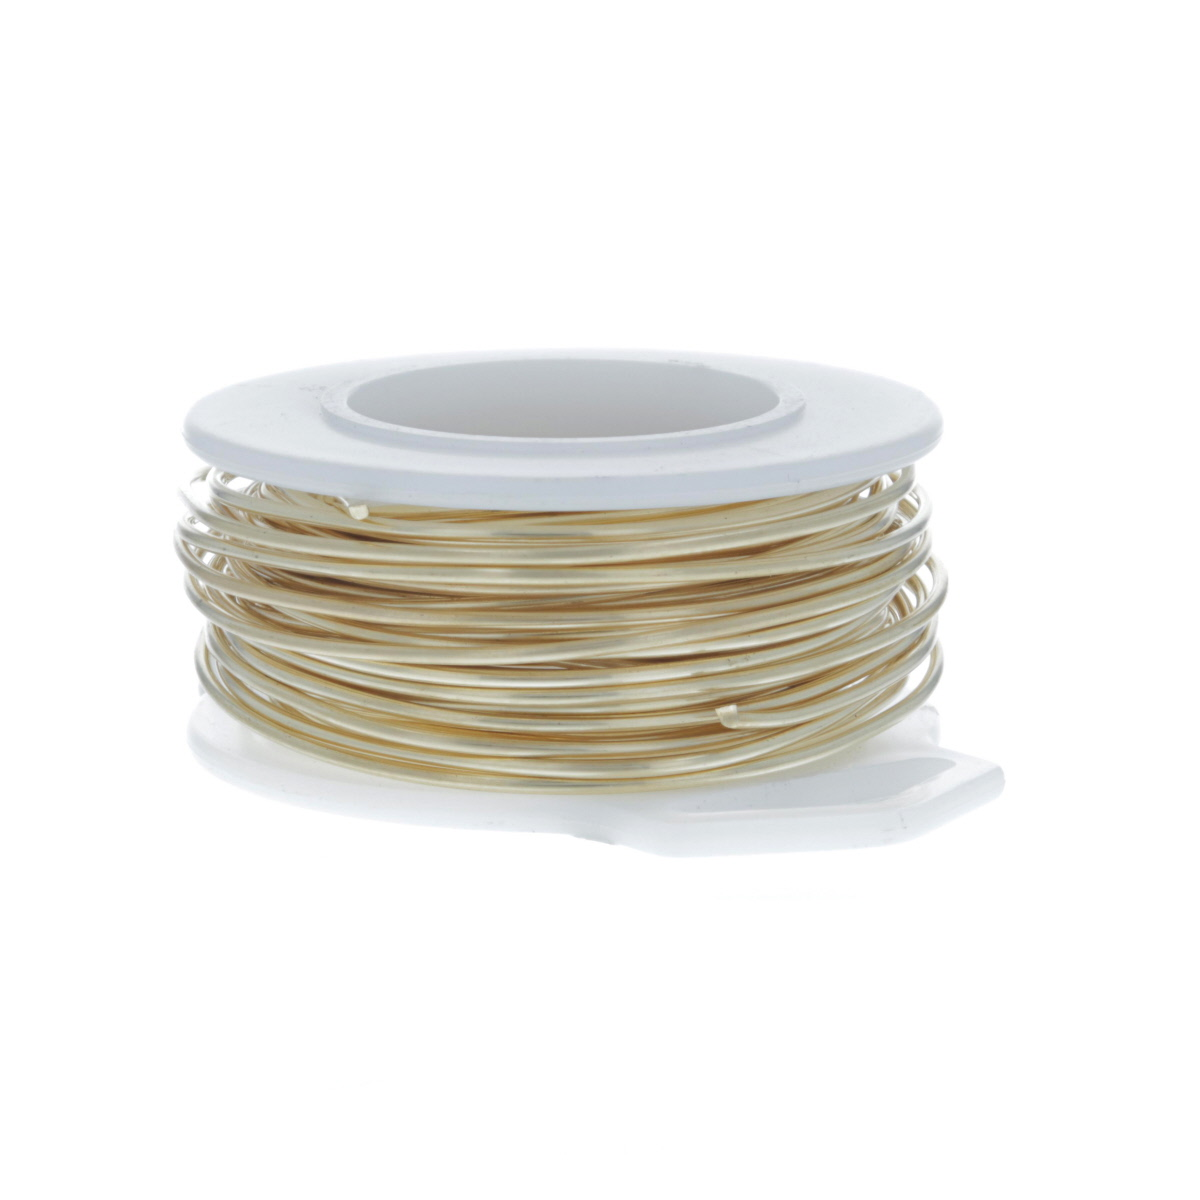 22 Gauge Round Gold Tone Brass Craft Wire - 45 ft